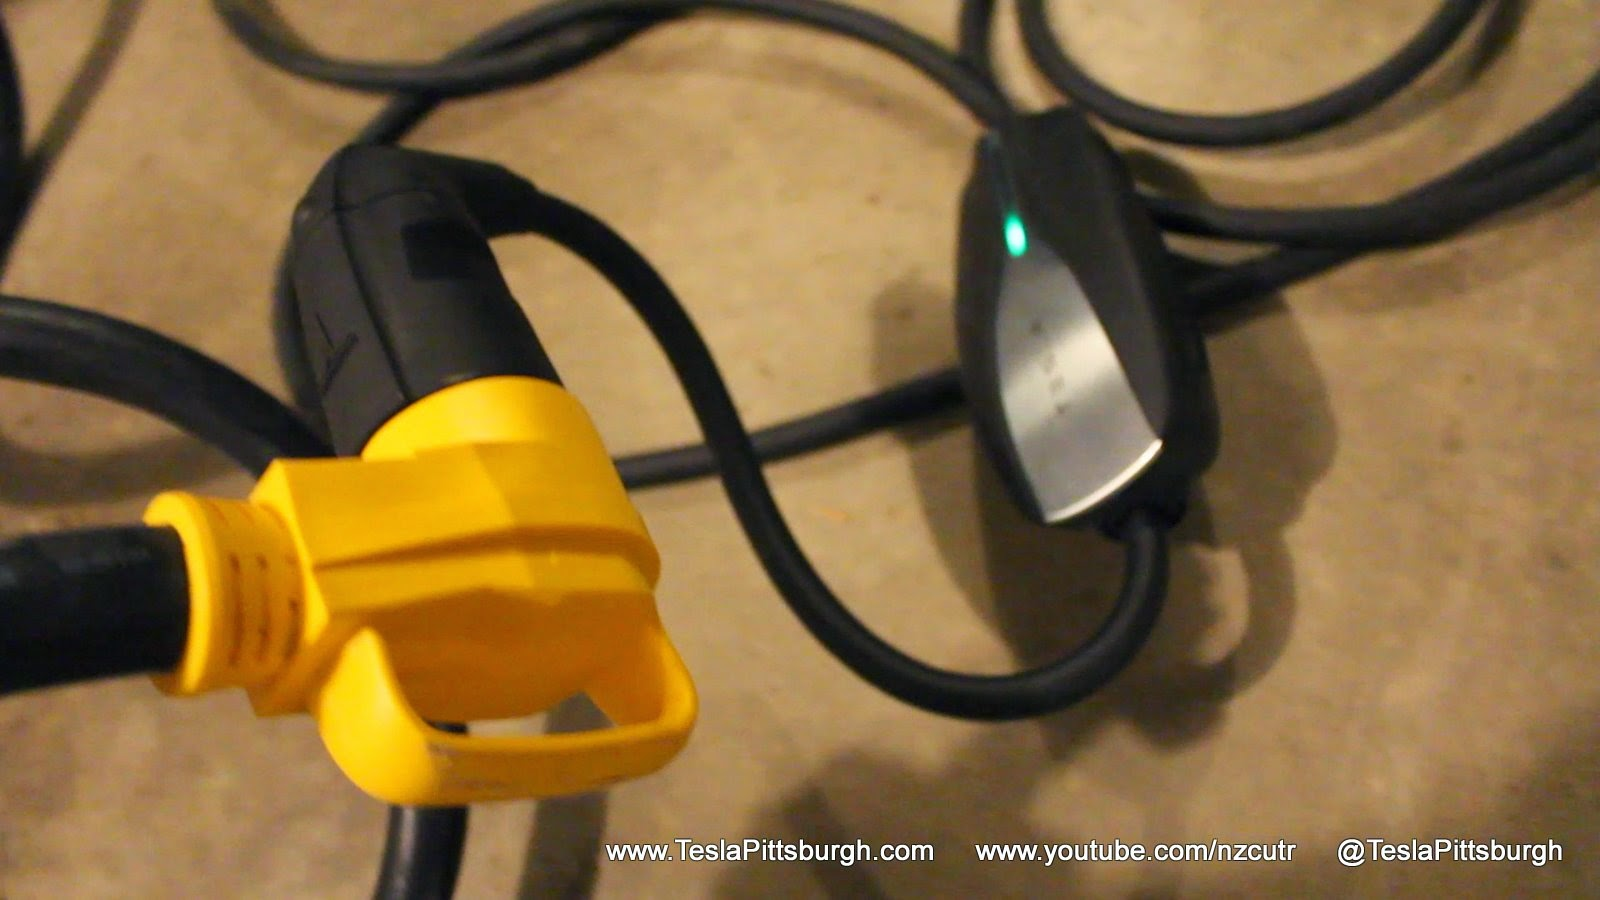 Tesla Umc Extension Cord Via Camco 50 Amp 30 Powergrip Wiring A 90 Degree Plug